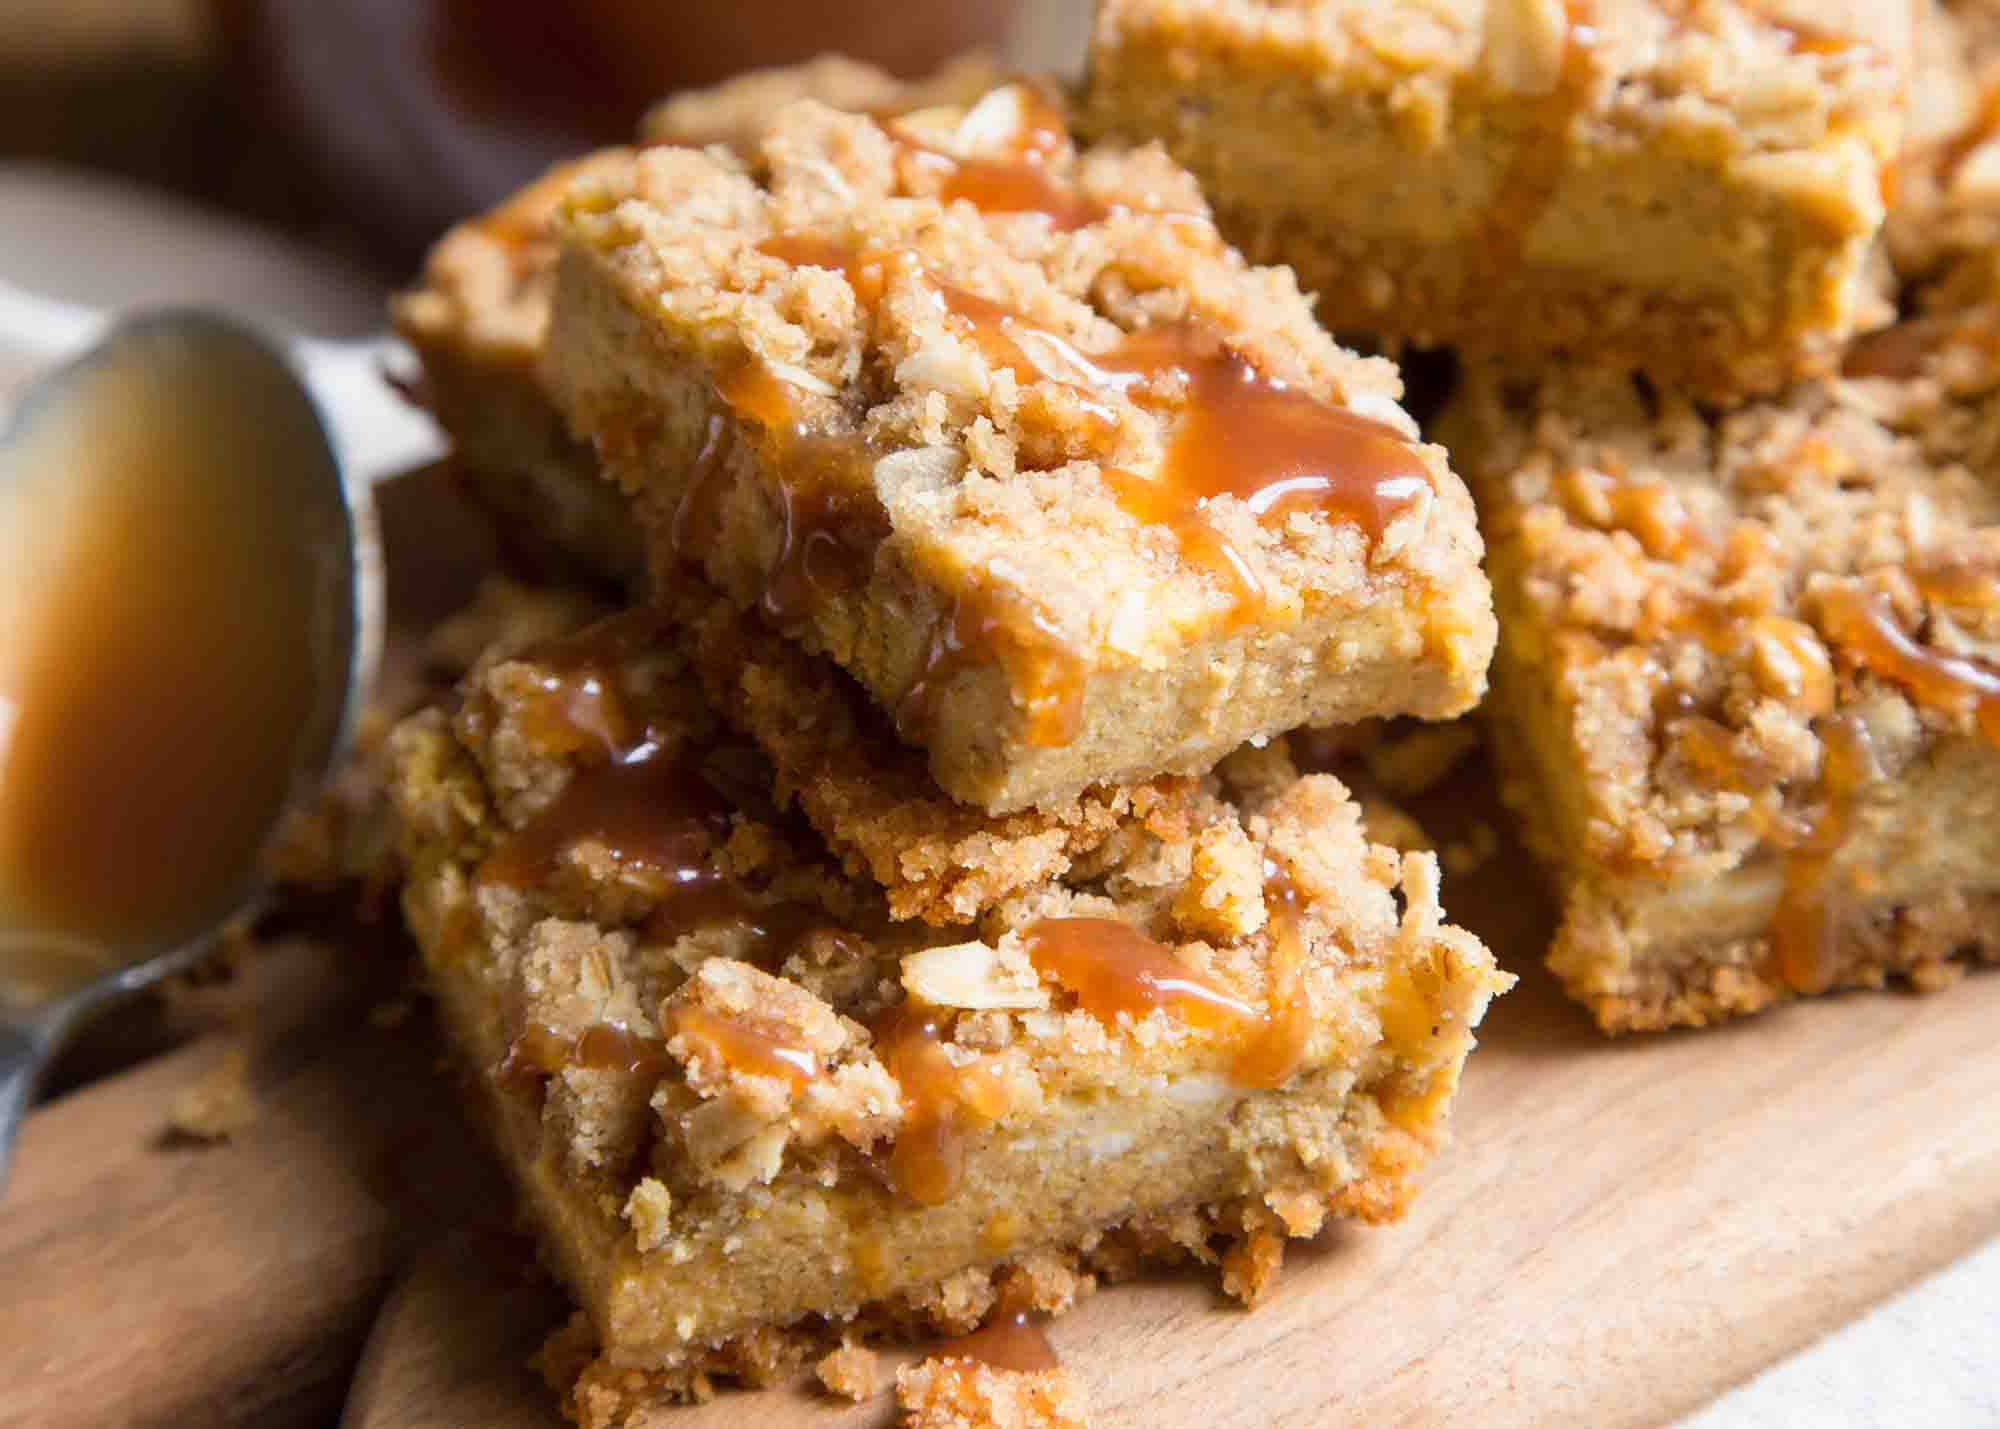 pumpkin cheesecake bar with struesel topping and caramel sauce